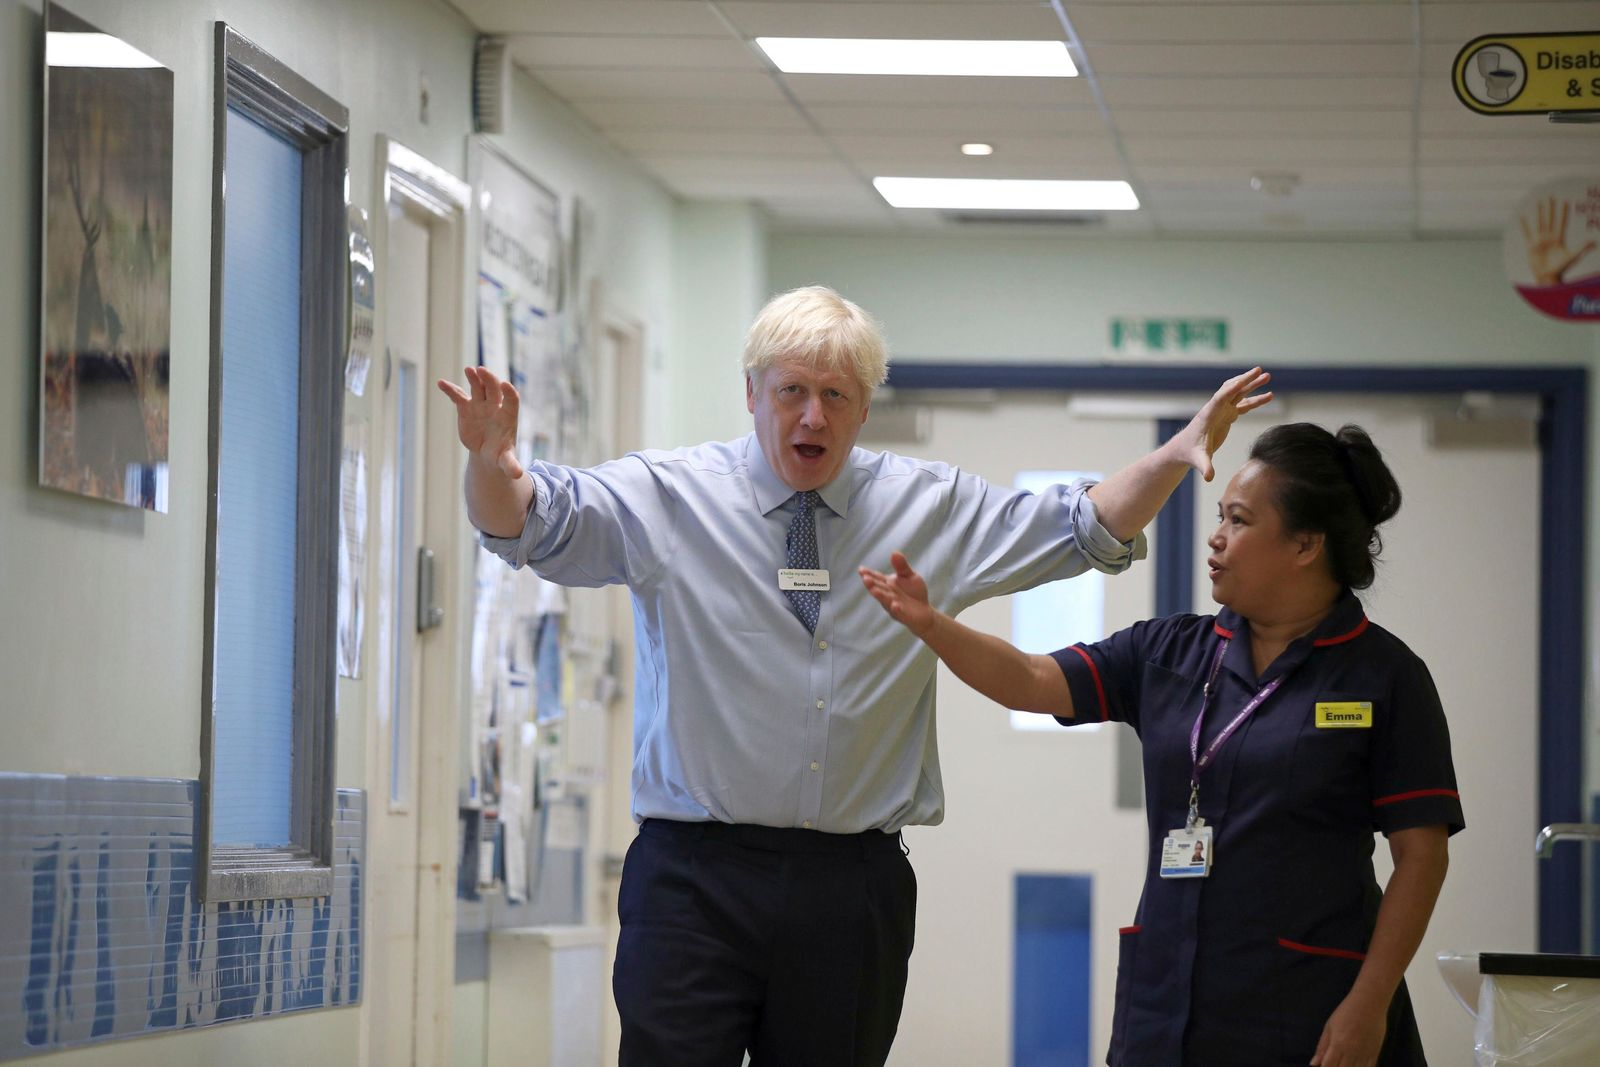 Britain's Prime Minister Boris Johnson visits Whipps Cross University Hospital in Leytonstone, east London, Wednesday Sept. 18, 2019. (Yui Mok/Pool via AP)